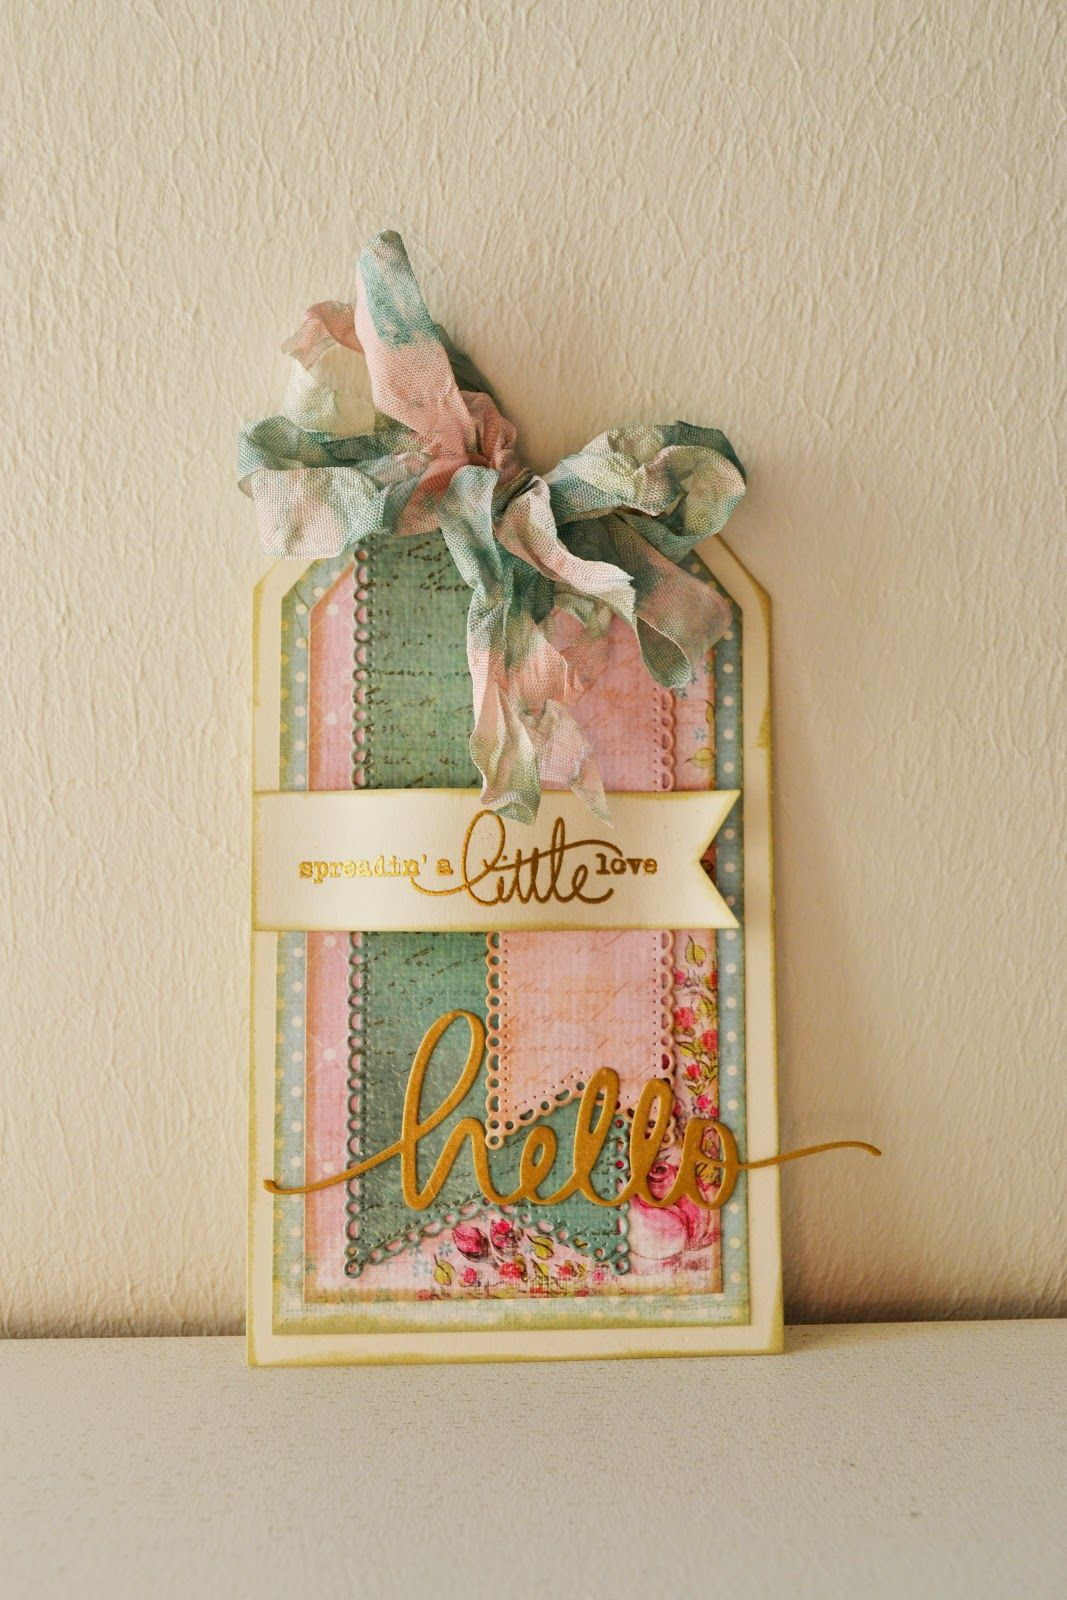 Happymade: DT-dag hos Card and Scrap - Spreadin' a little love